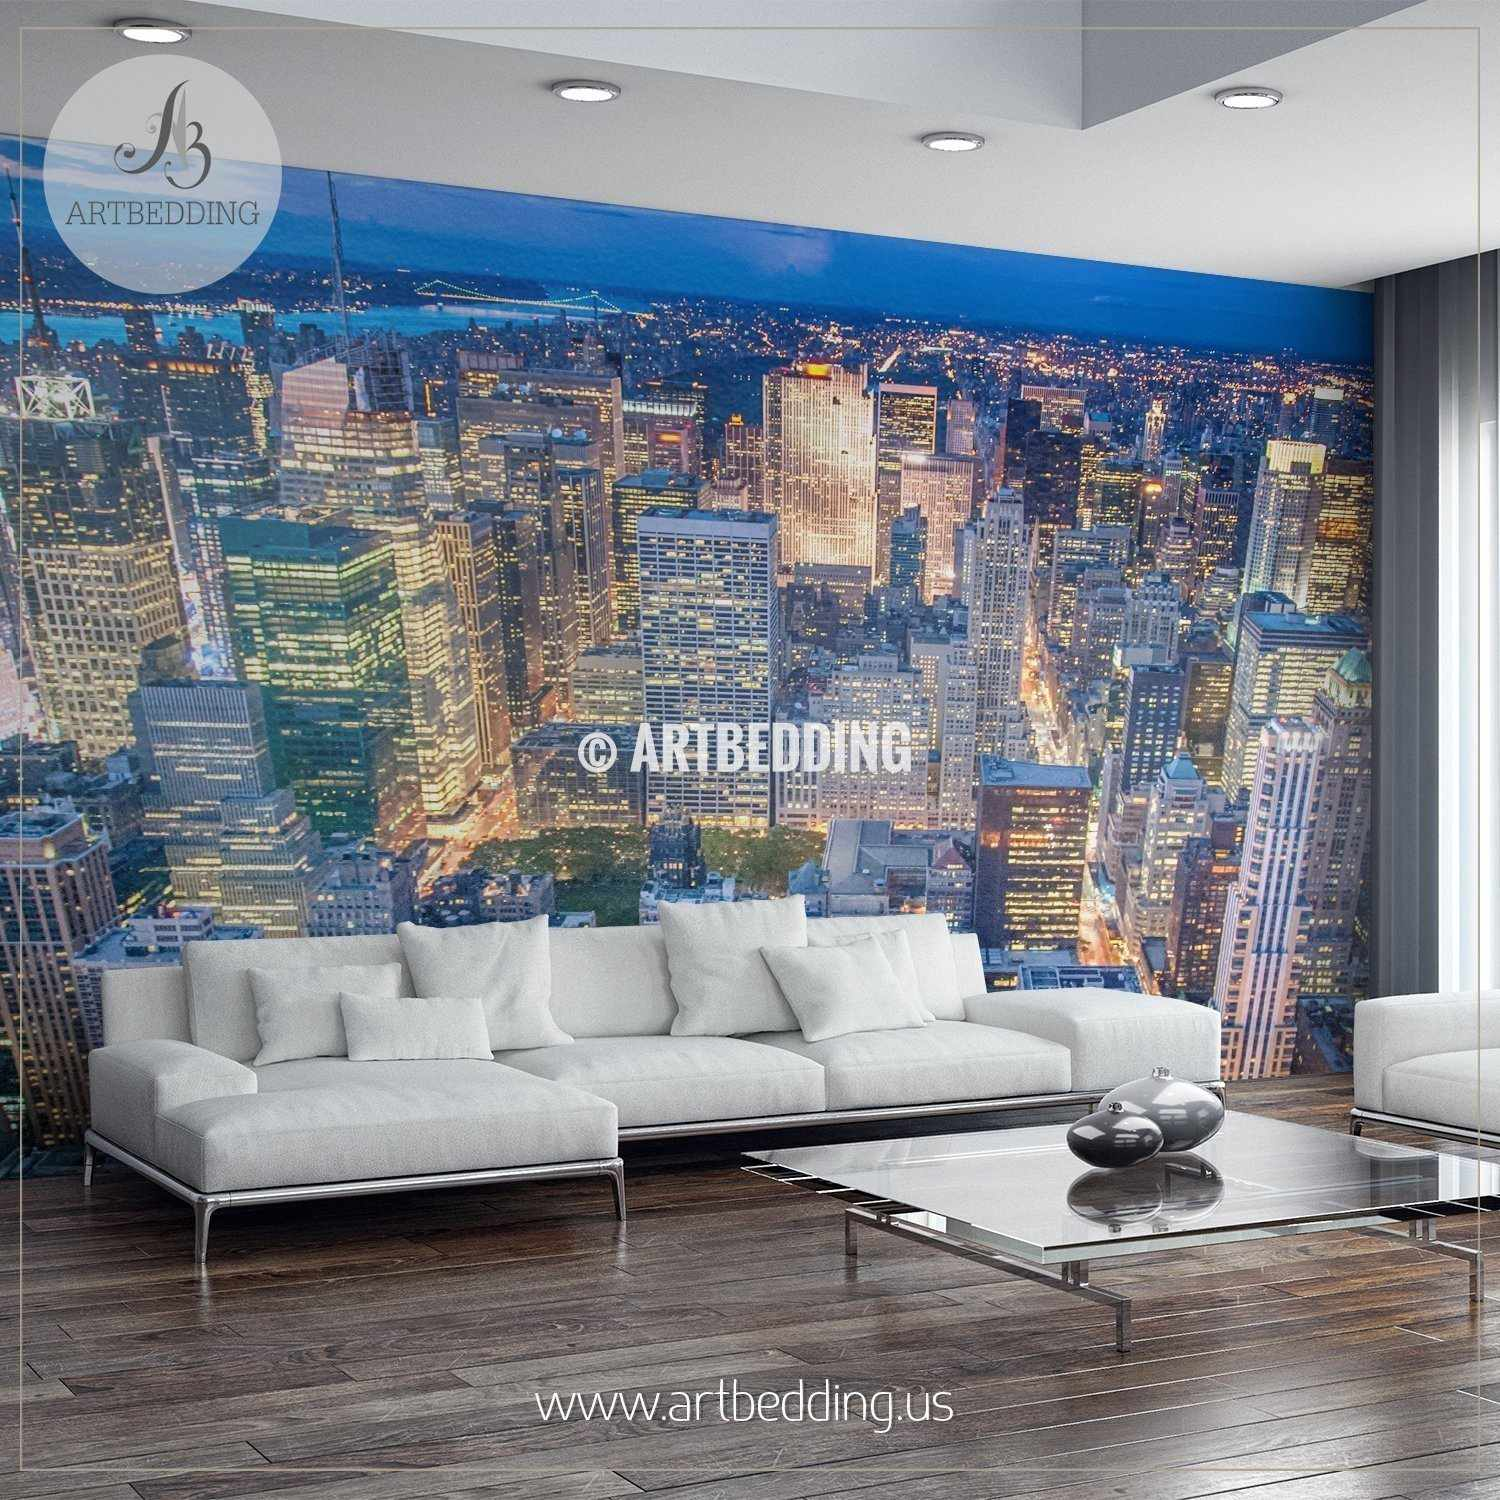 New York City Skyline Wall Mural  USA Photo Mural  USA wall d cor wall  mural. New York City Skyline Wall Mural  USA Photo Mural  USA wall d cor